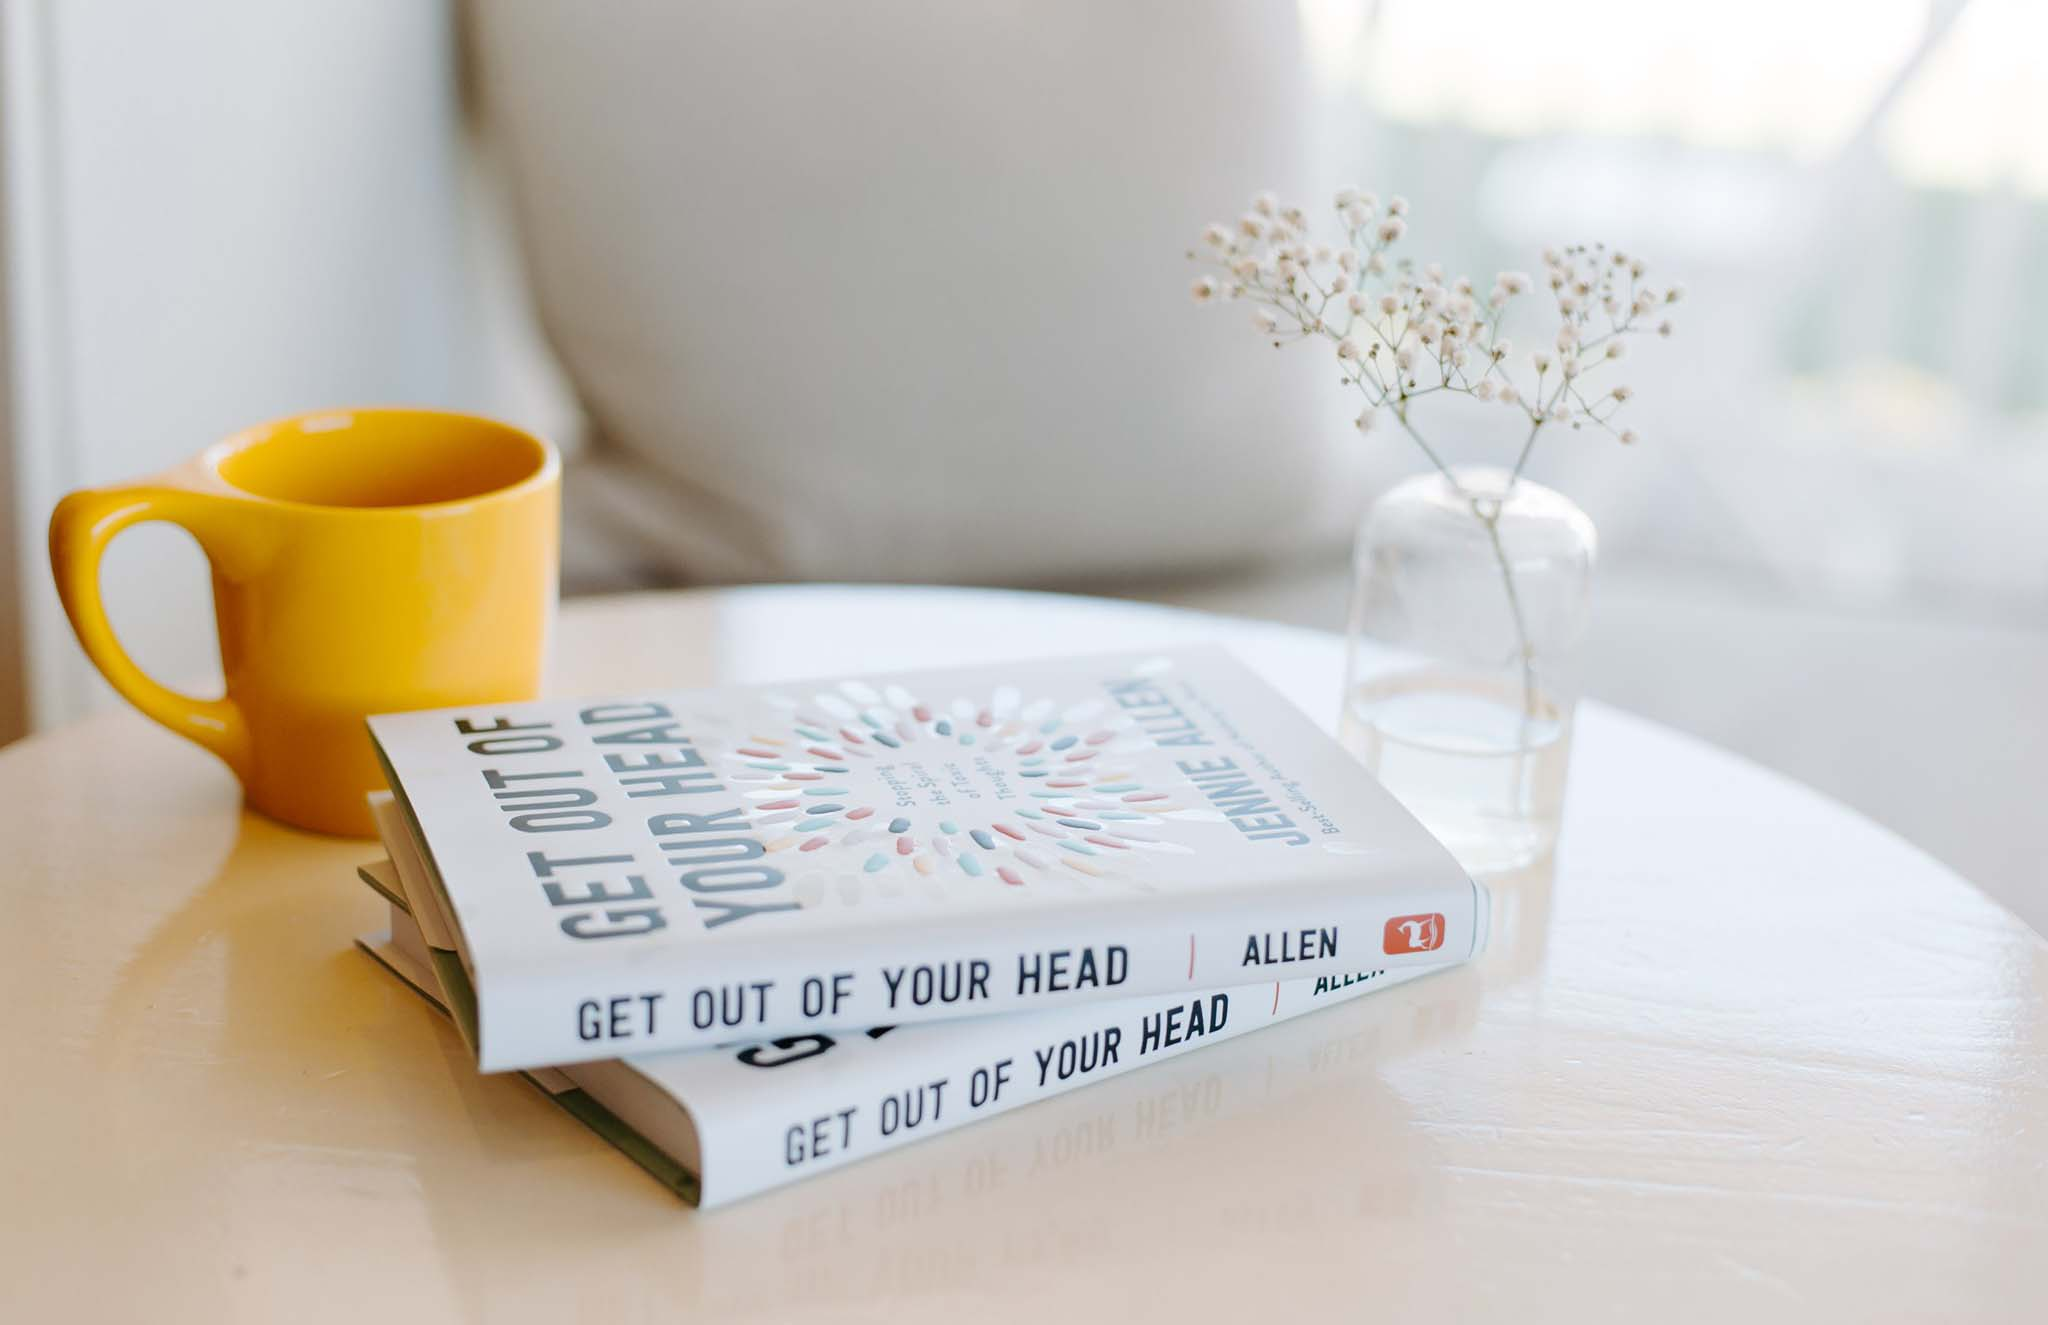 GET OUT OF YOUR HEAD by Jennie Allen